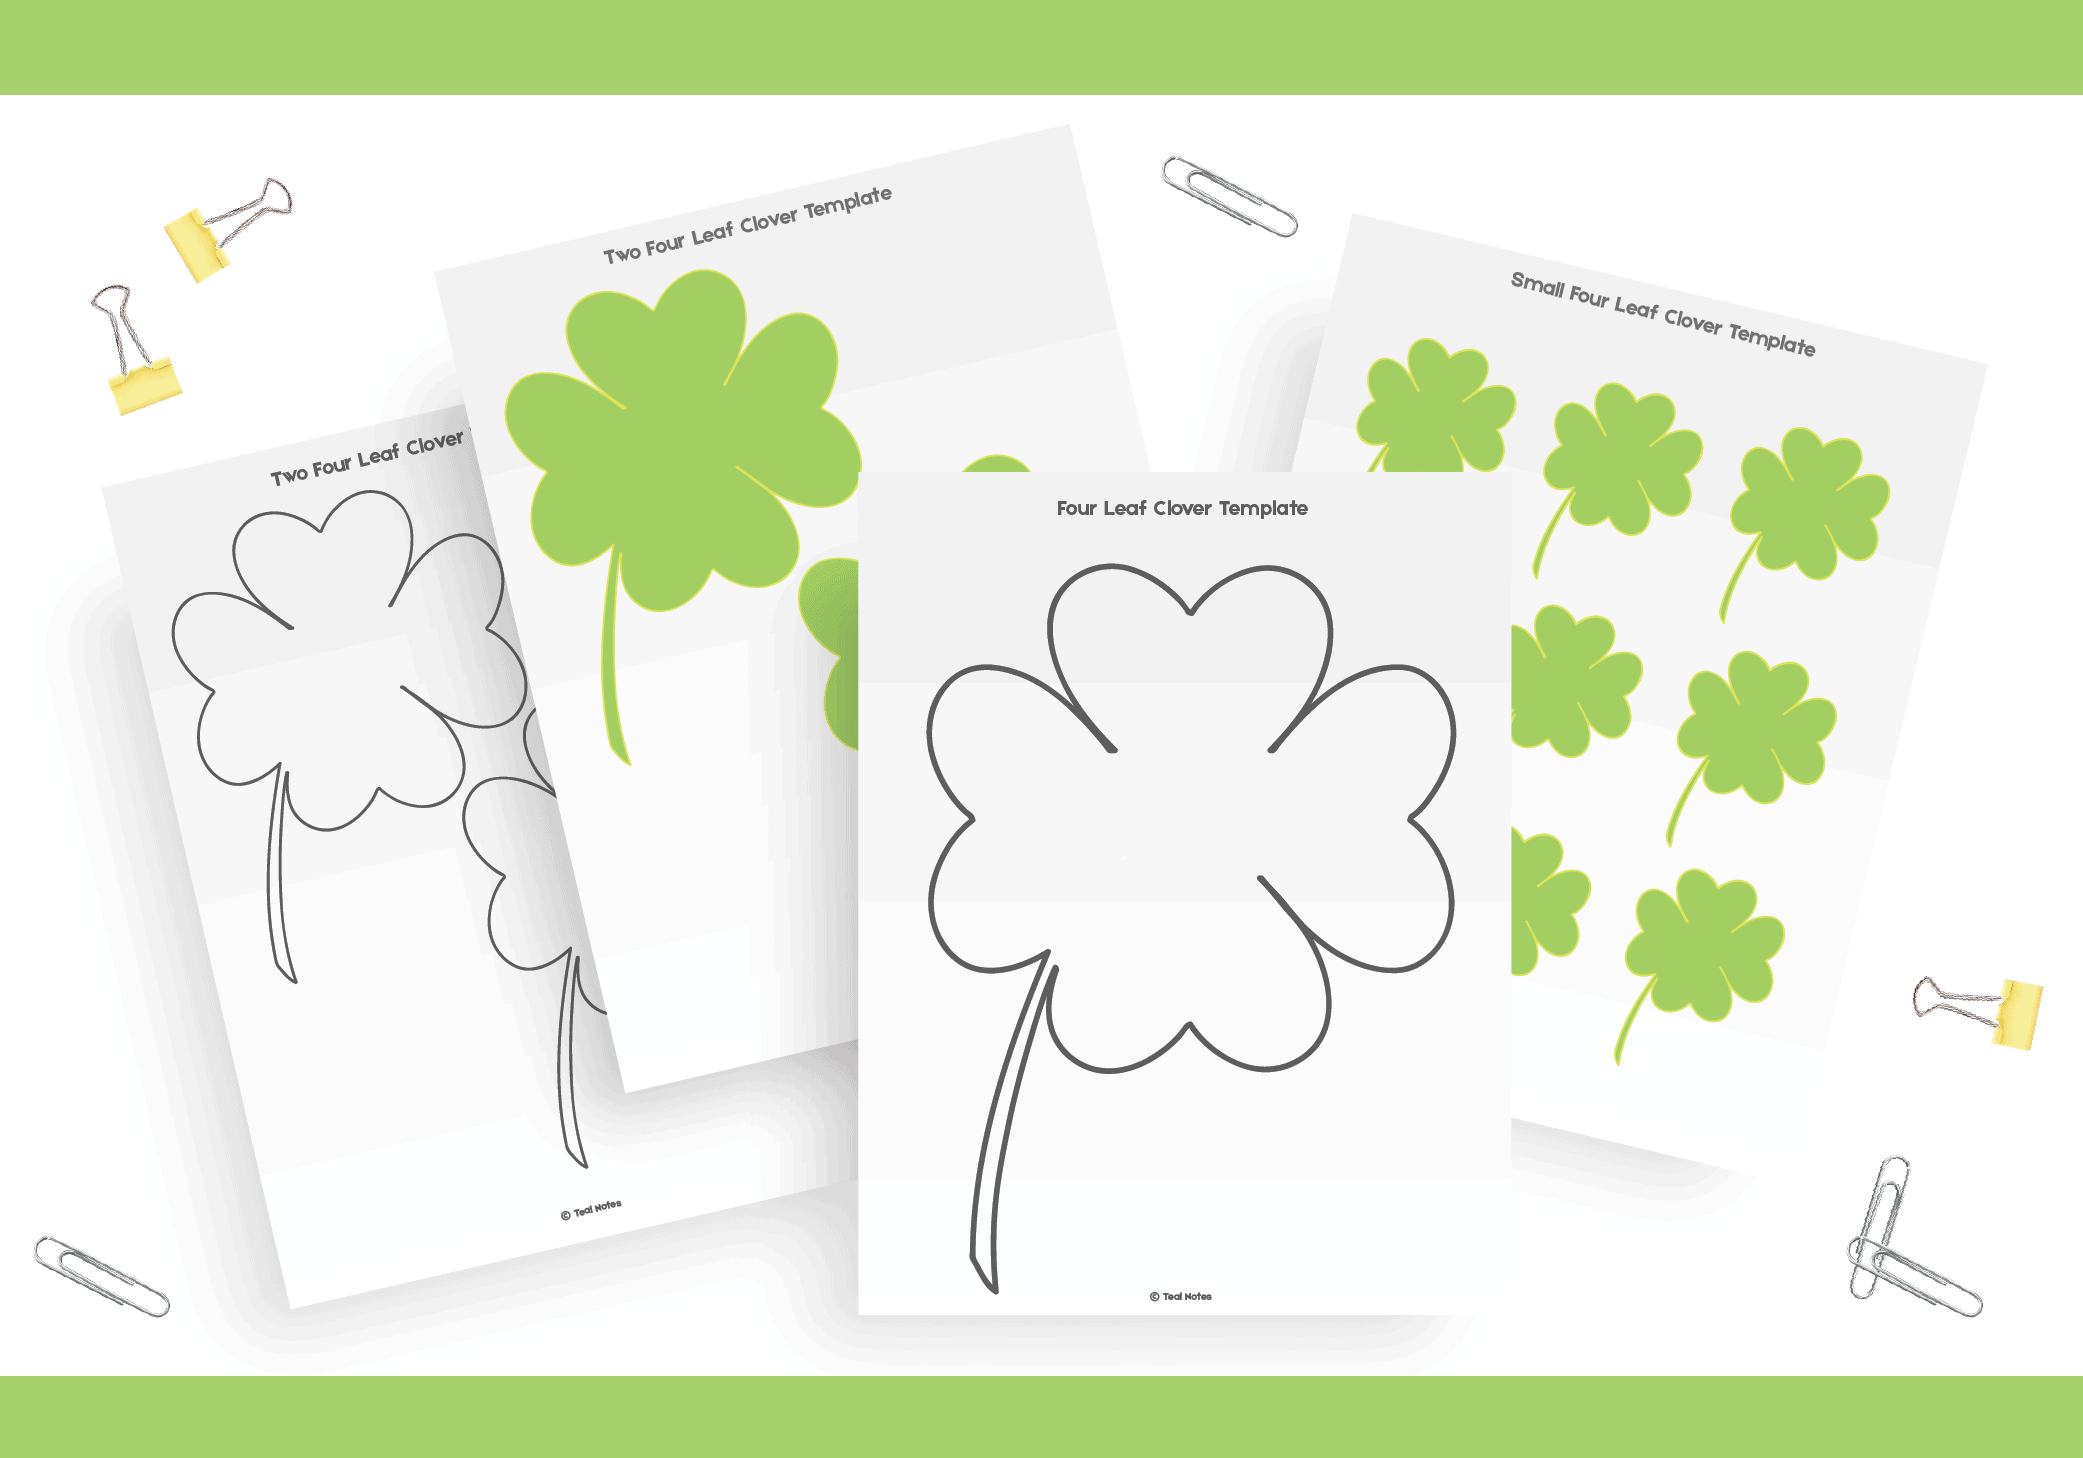 photograph regarding Four Leaf Clover Printable Template called 4 Leaf Clover Template: Cost-free Shamrock Template Printable